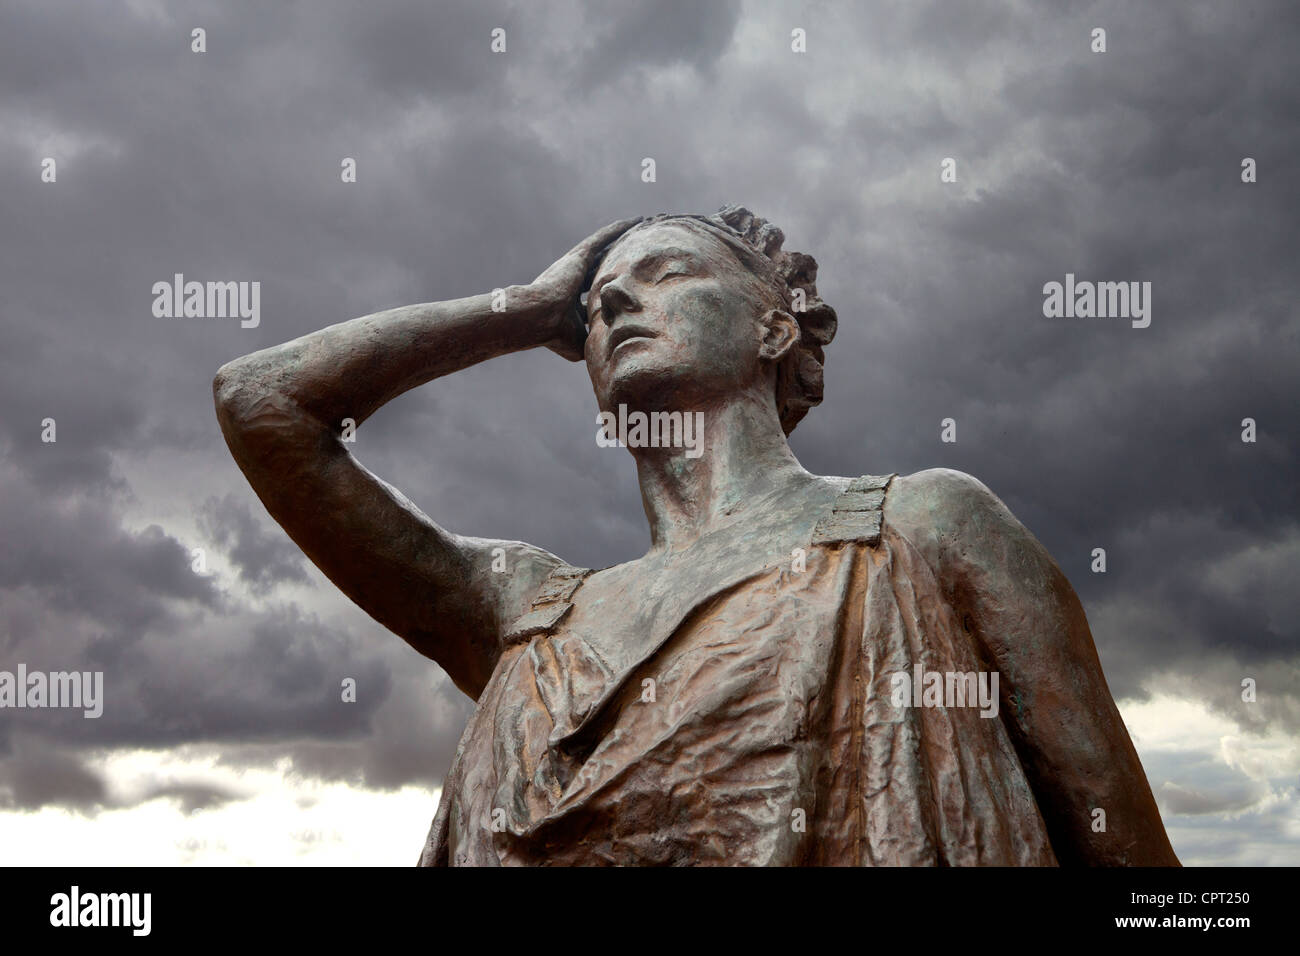 Modern bronze statue in the Roman ruins of Merida, Spain - Stock Image